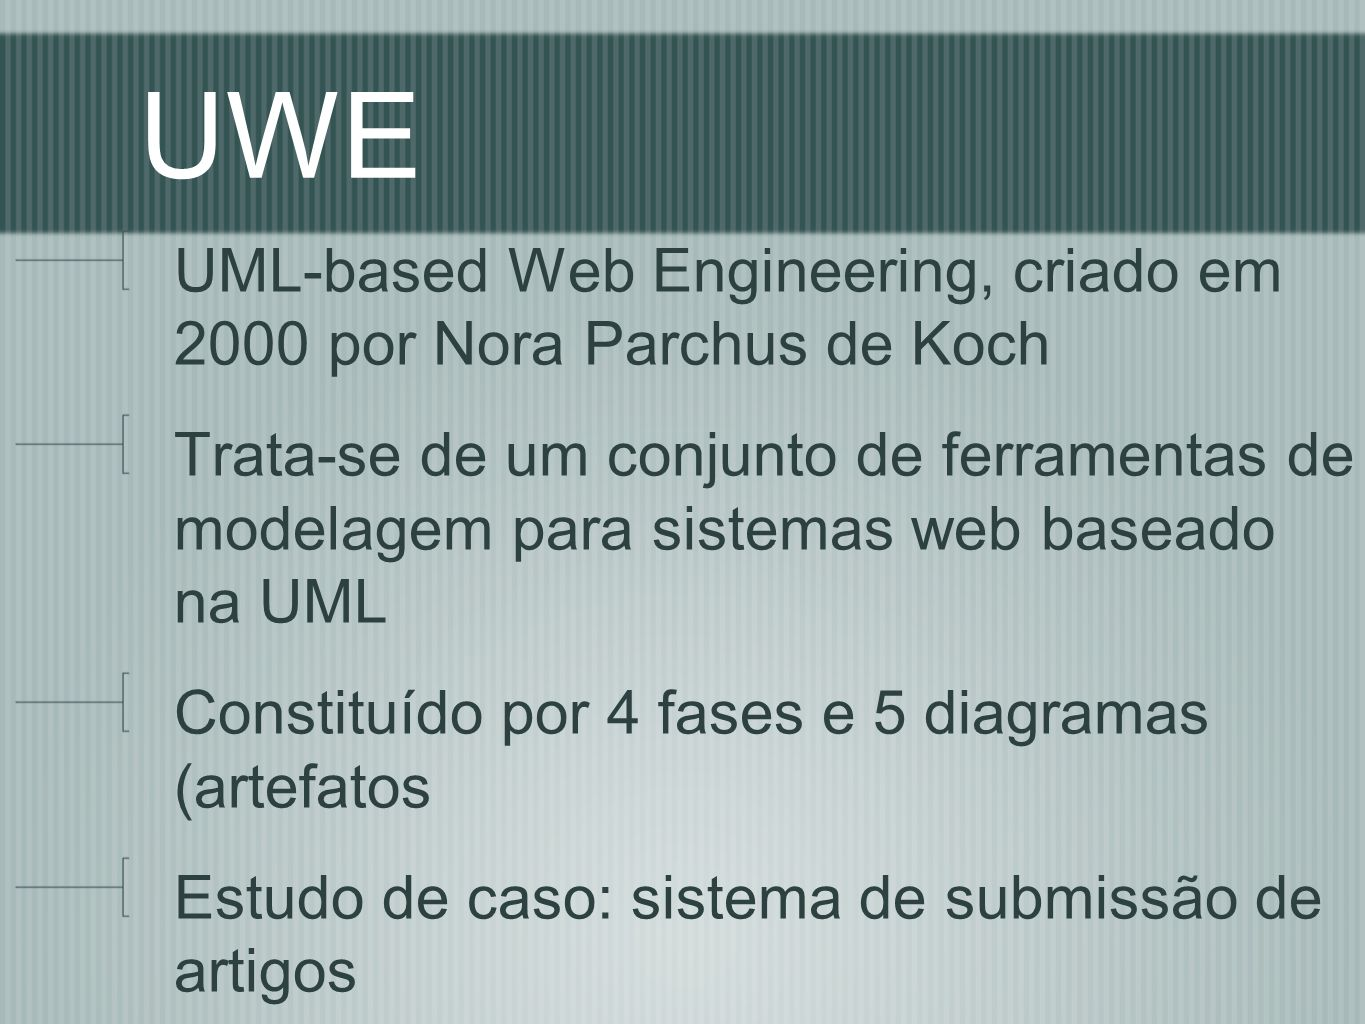 UWE UML-based Web Engineering, criado em 2000 por Nora Parchus de Koch